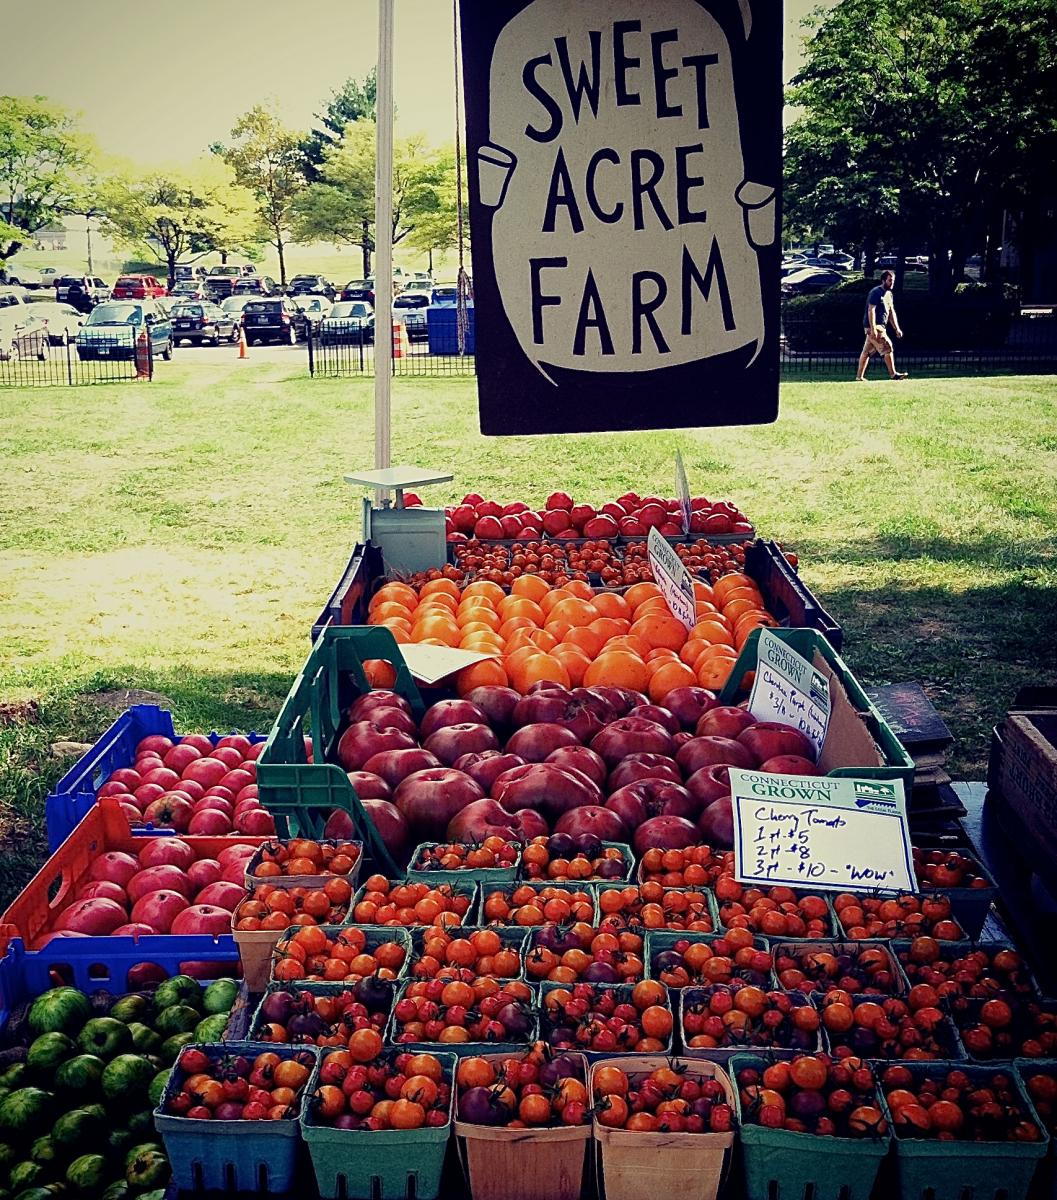 Sweet Acre Farm stand